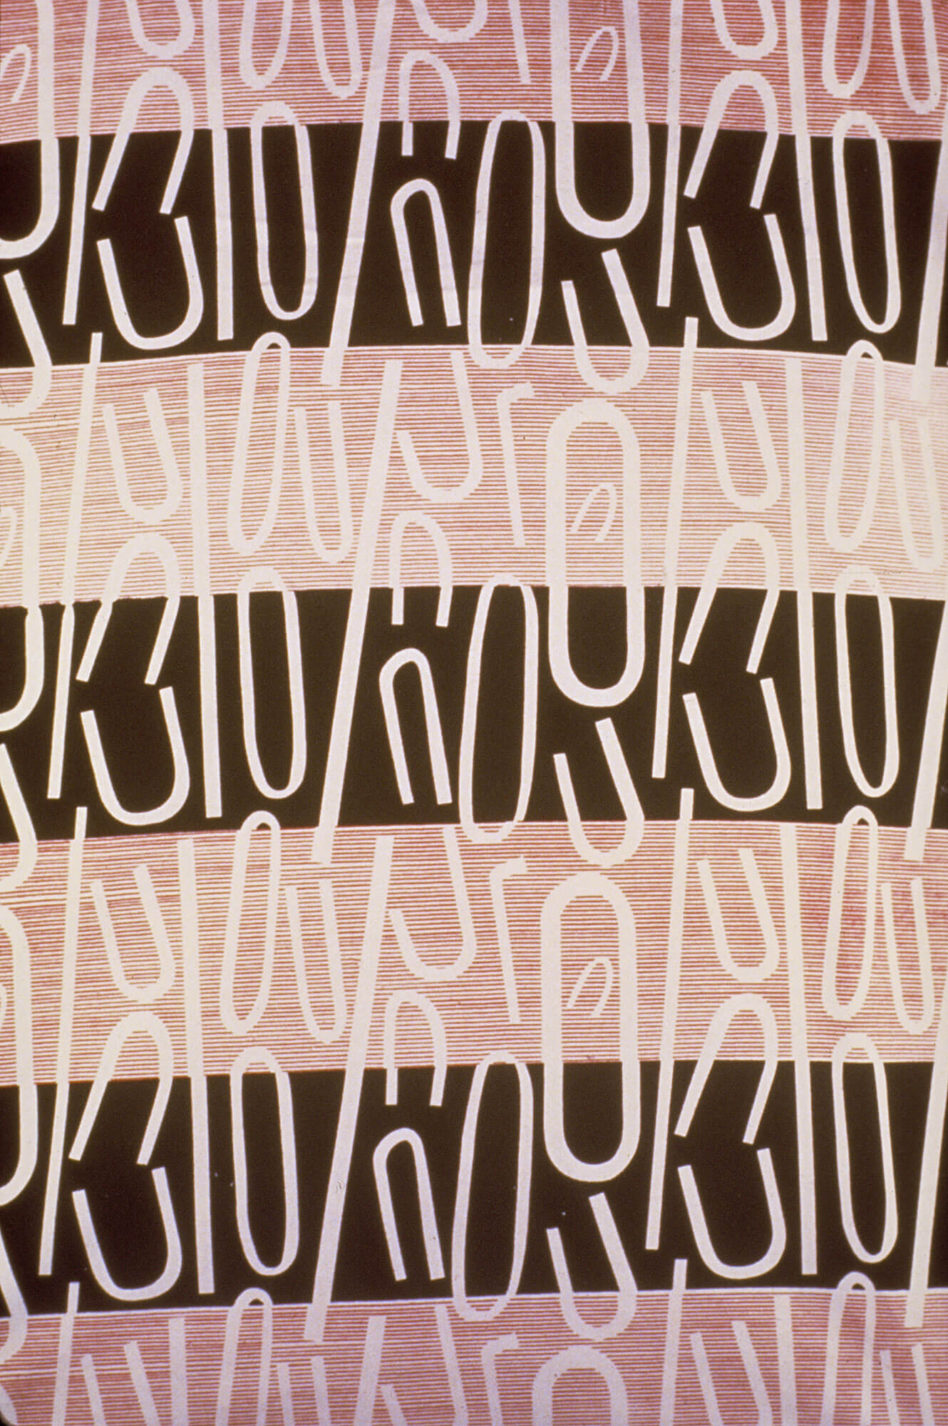 Textile with alternating horizontal stripes of dark brown and shades of pink with an overlying pattern of shapes like parts of paperclips.